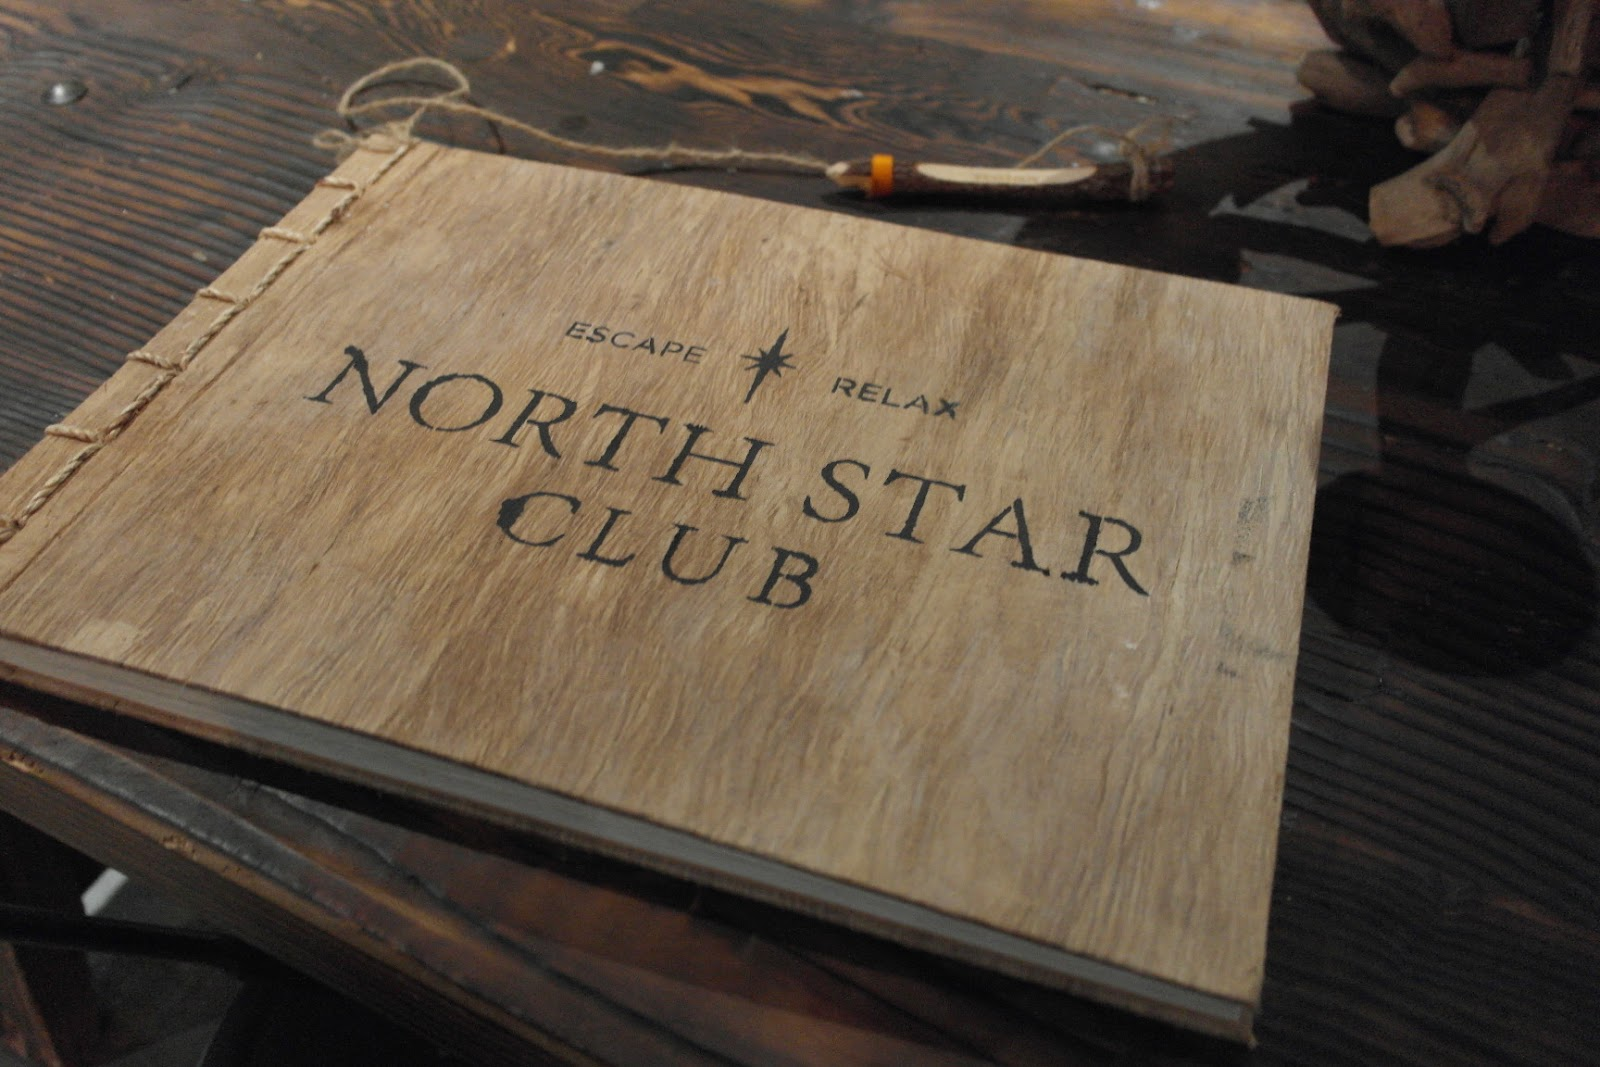 North Star Club Woodland Suite review